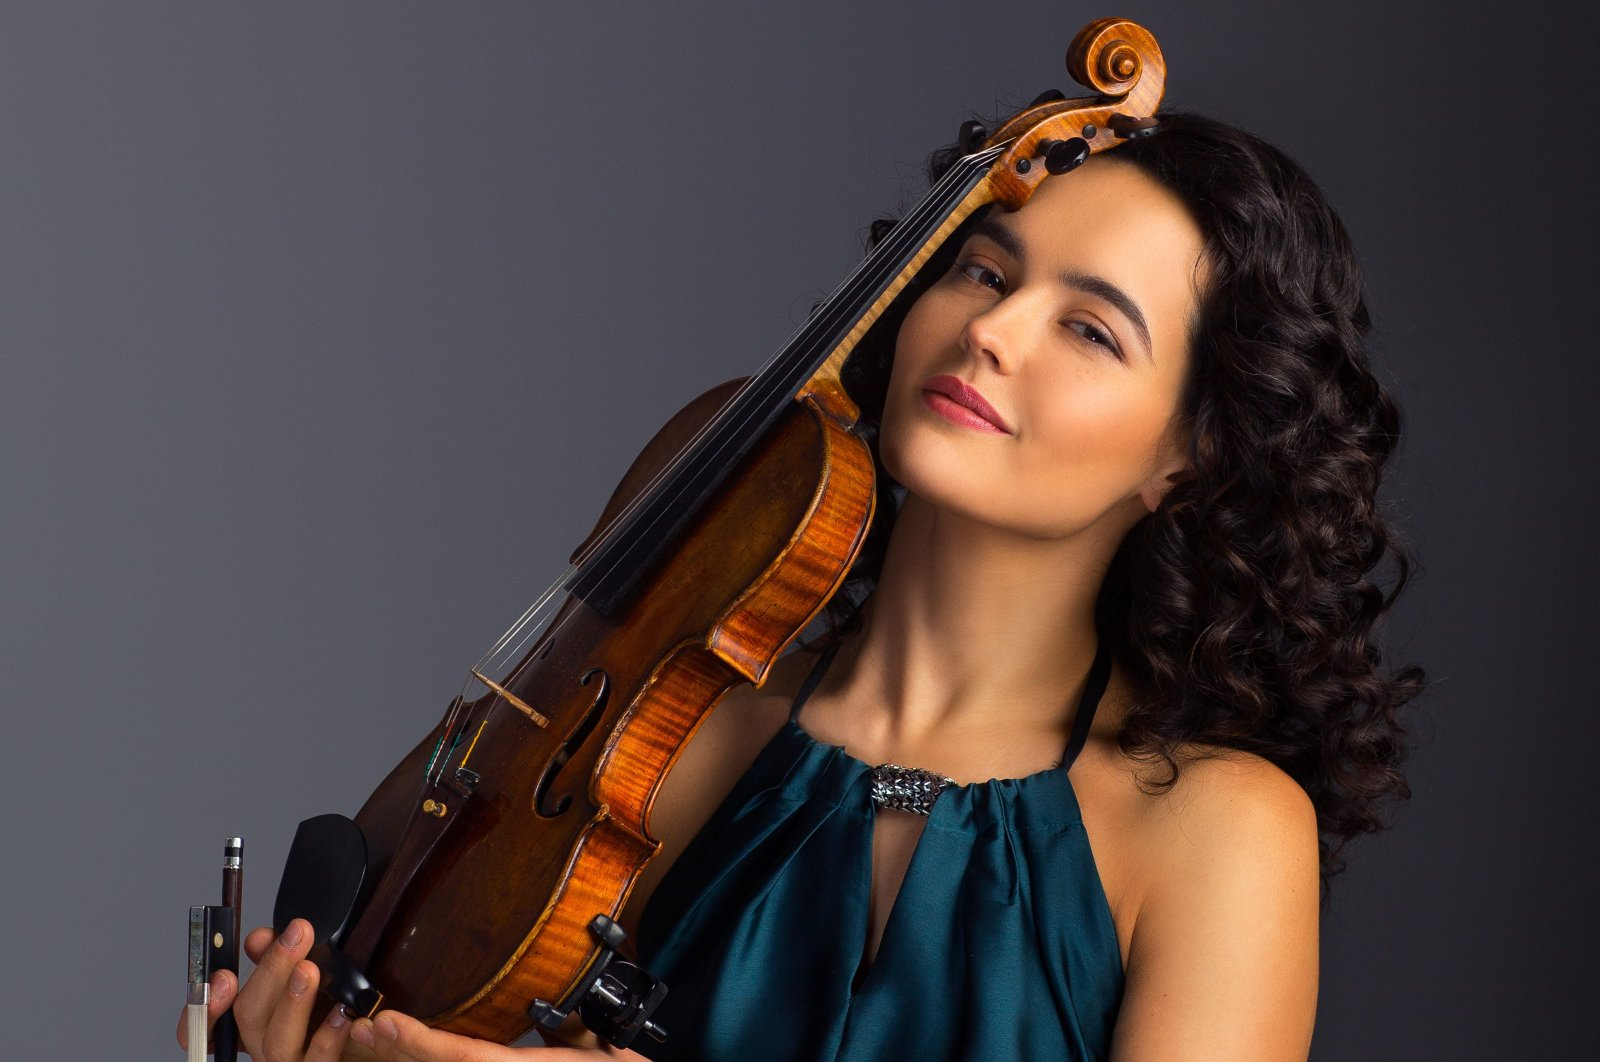 Alena Baeva has won Grand Prix in many international violin competitions to date. (Courtesy of CRR Concert Hall)